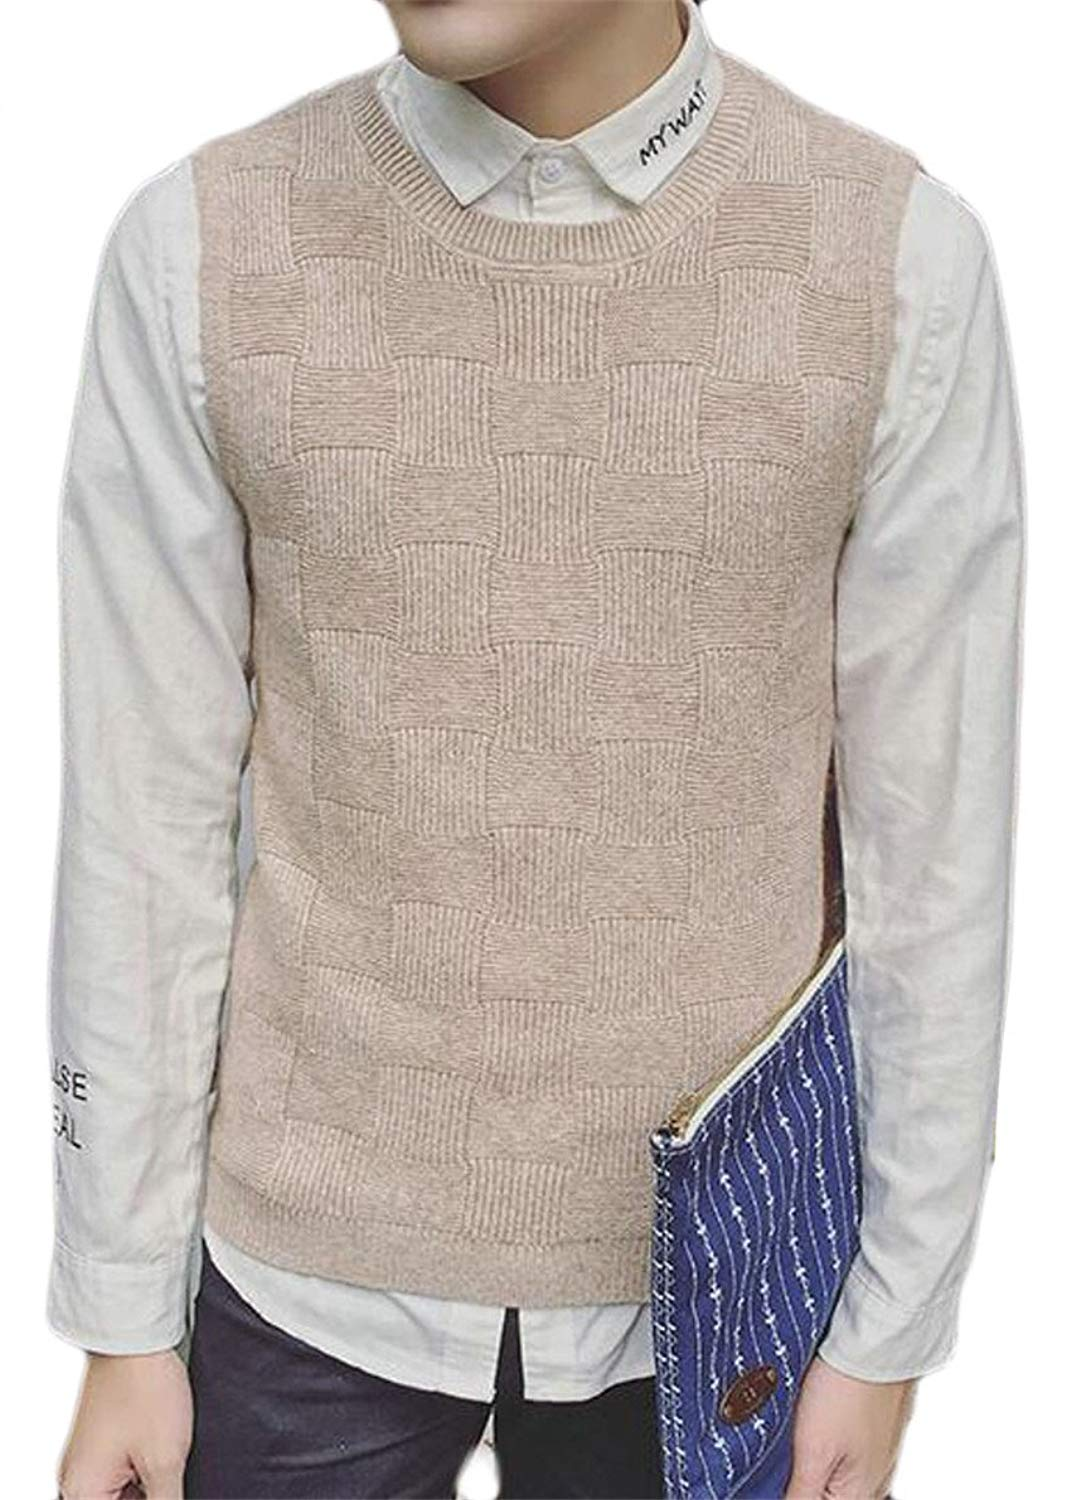 83e7f70e7 Get Quotations · MLG Mens Fashion Crewneck Sleeveless Solid Color Knit Sweater  Vest